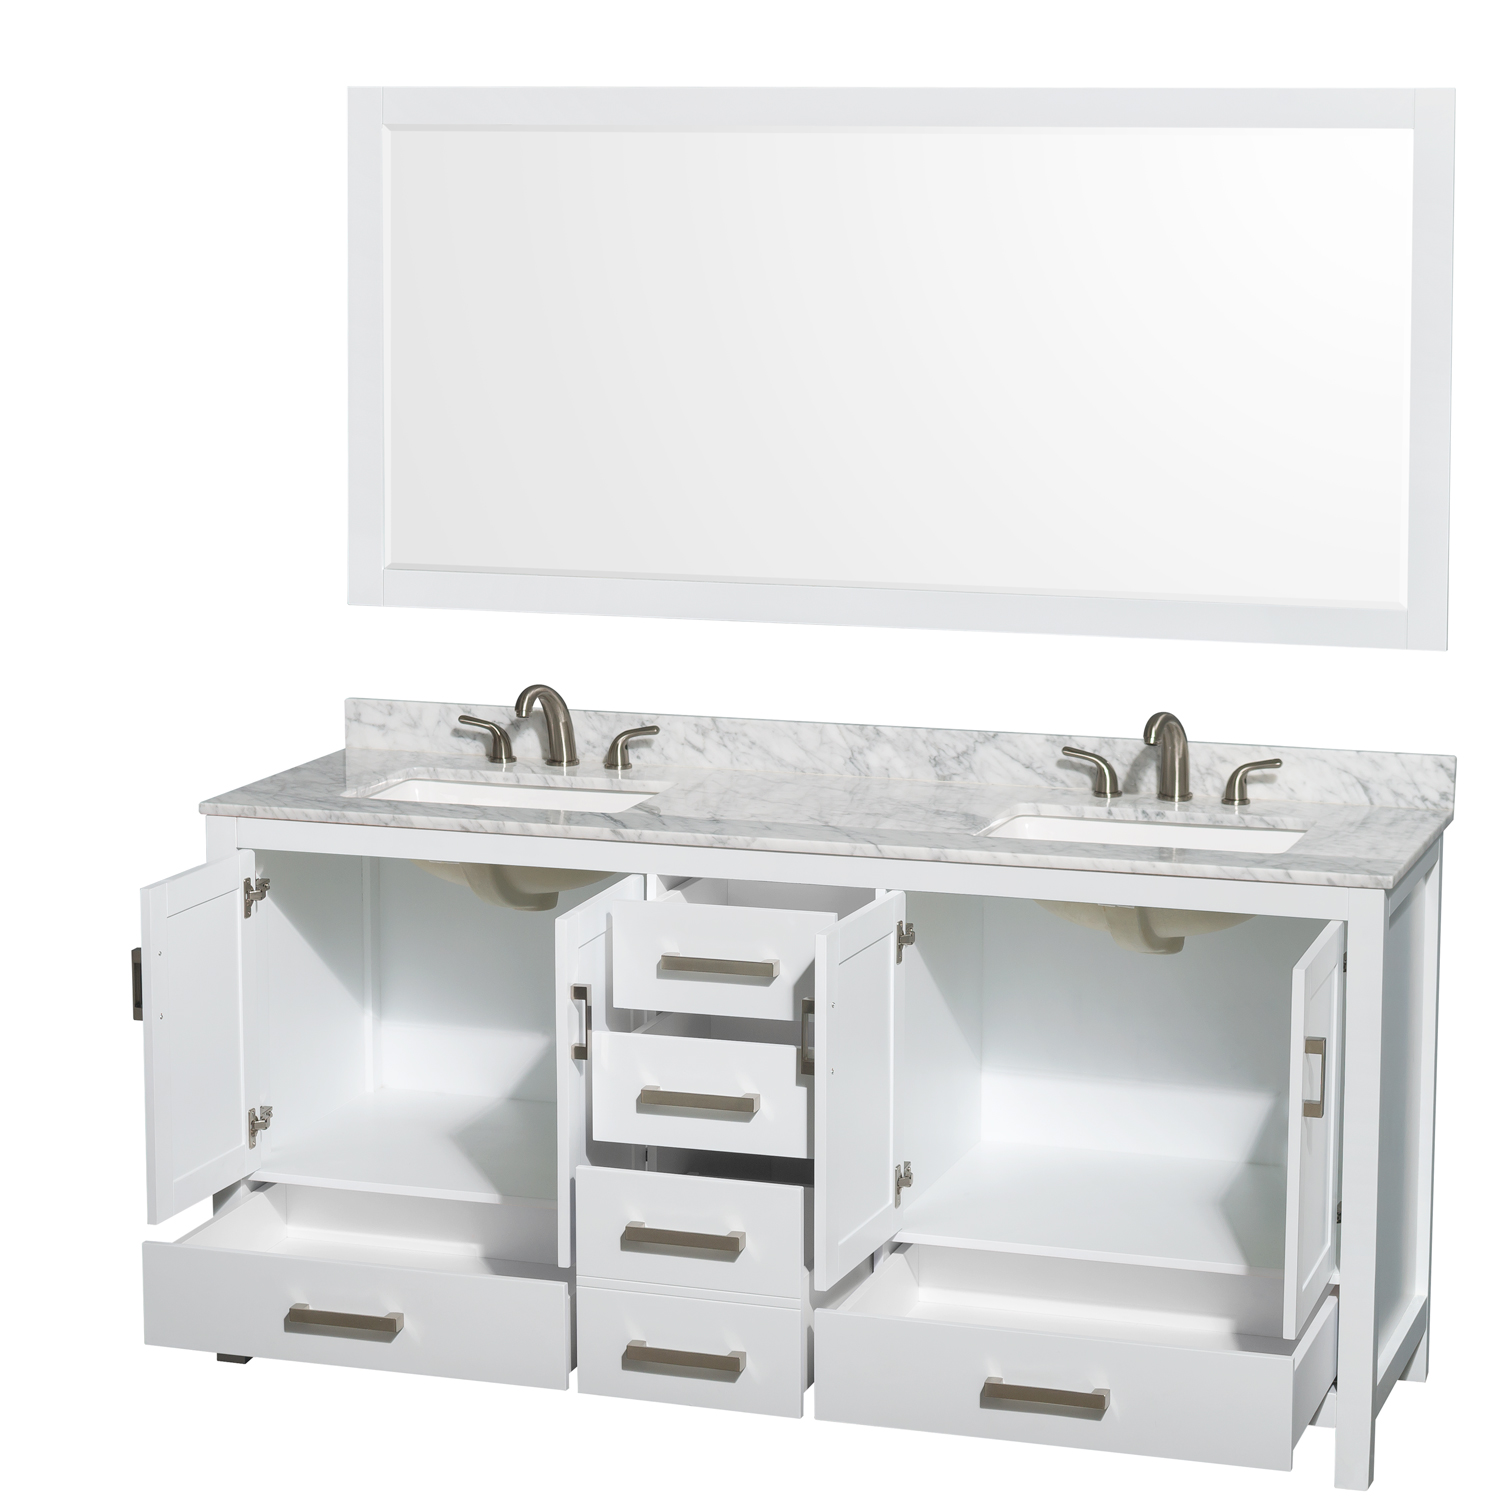 Sheffield 72 Double Bathroom Vanity Square Sinks 3 Hole White Beautiful Bathroom Furniture For Every Home Wyndham Collection